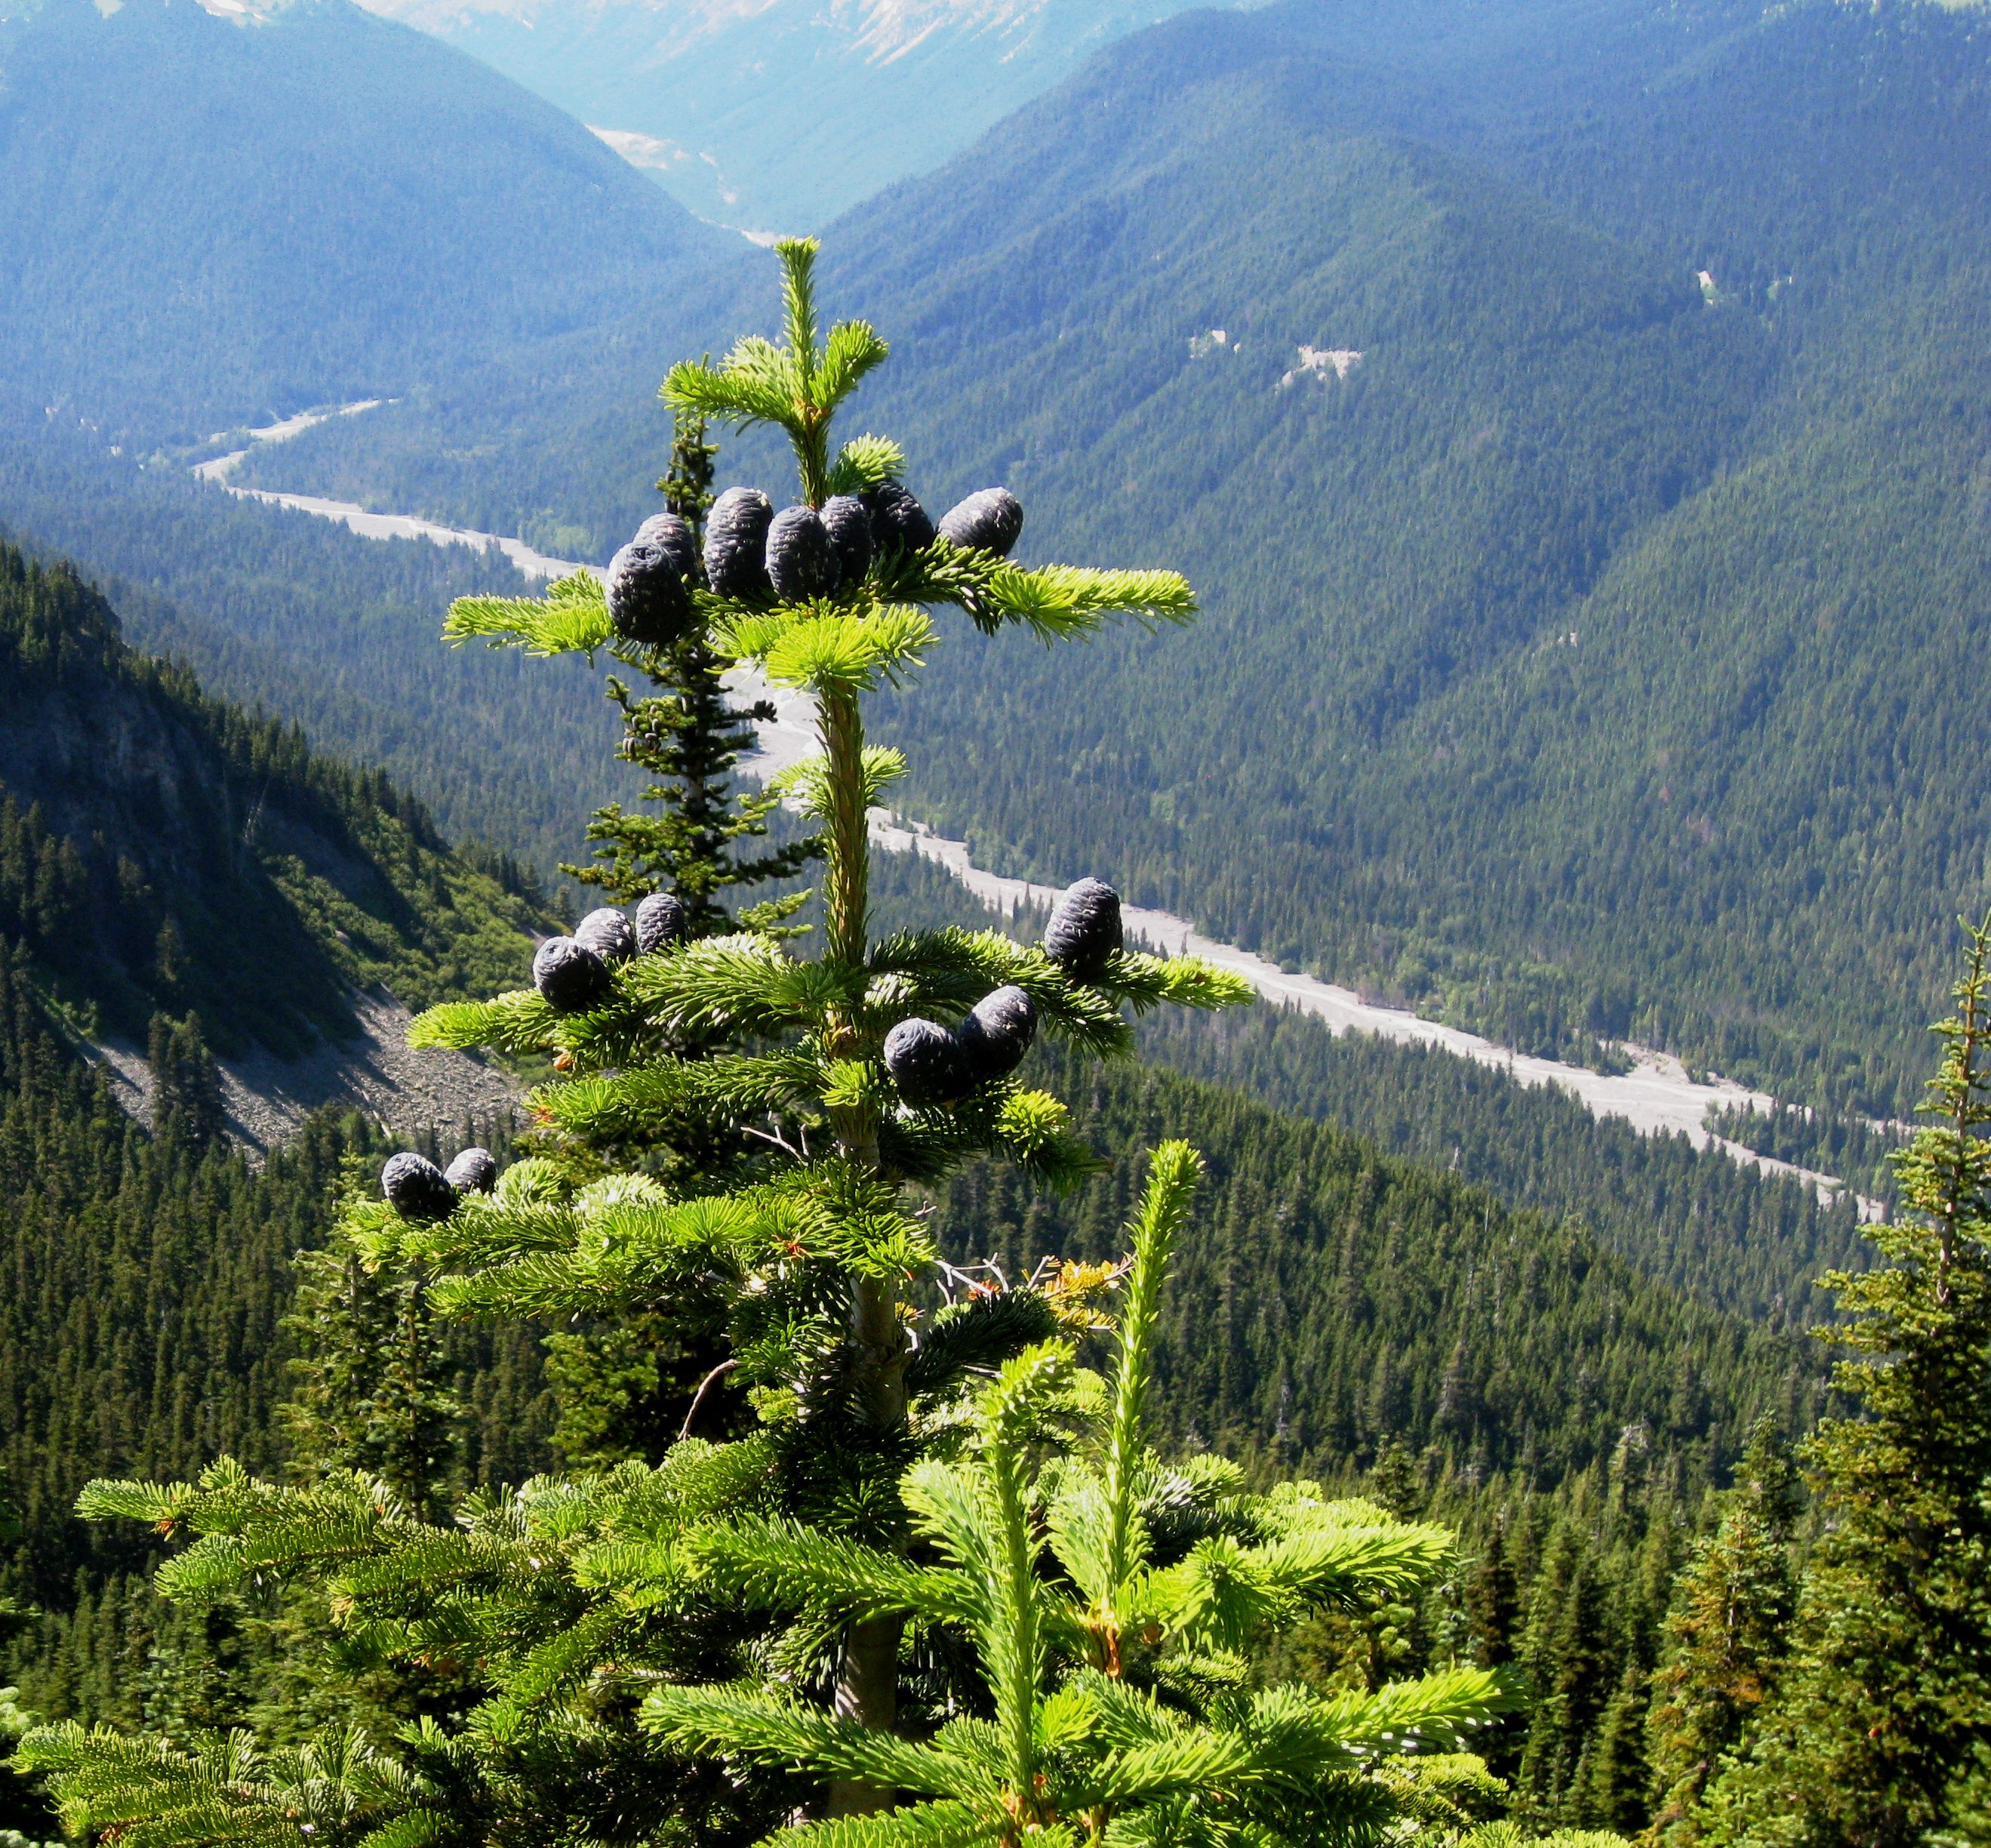 Pacific silver fir tree on a mountain.